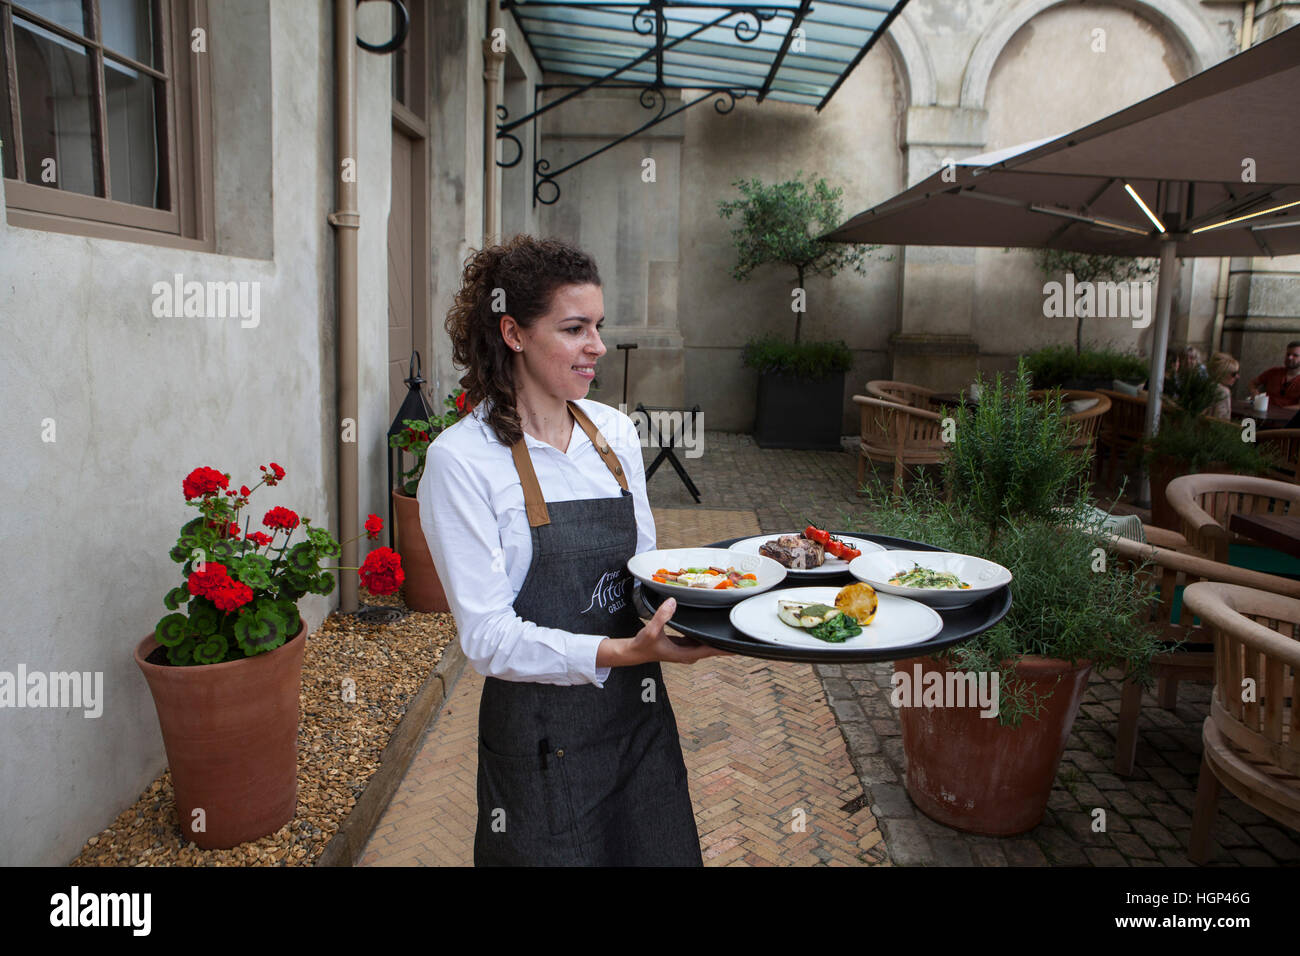 The Patio section of the Restaurant at The Astor Grill. Stock Photo